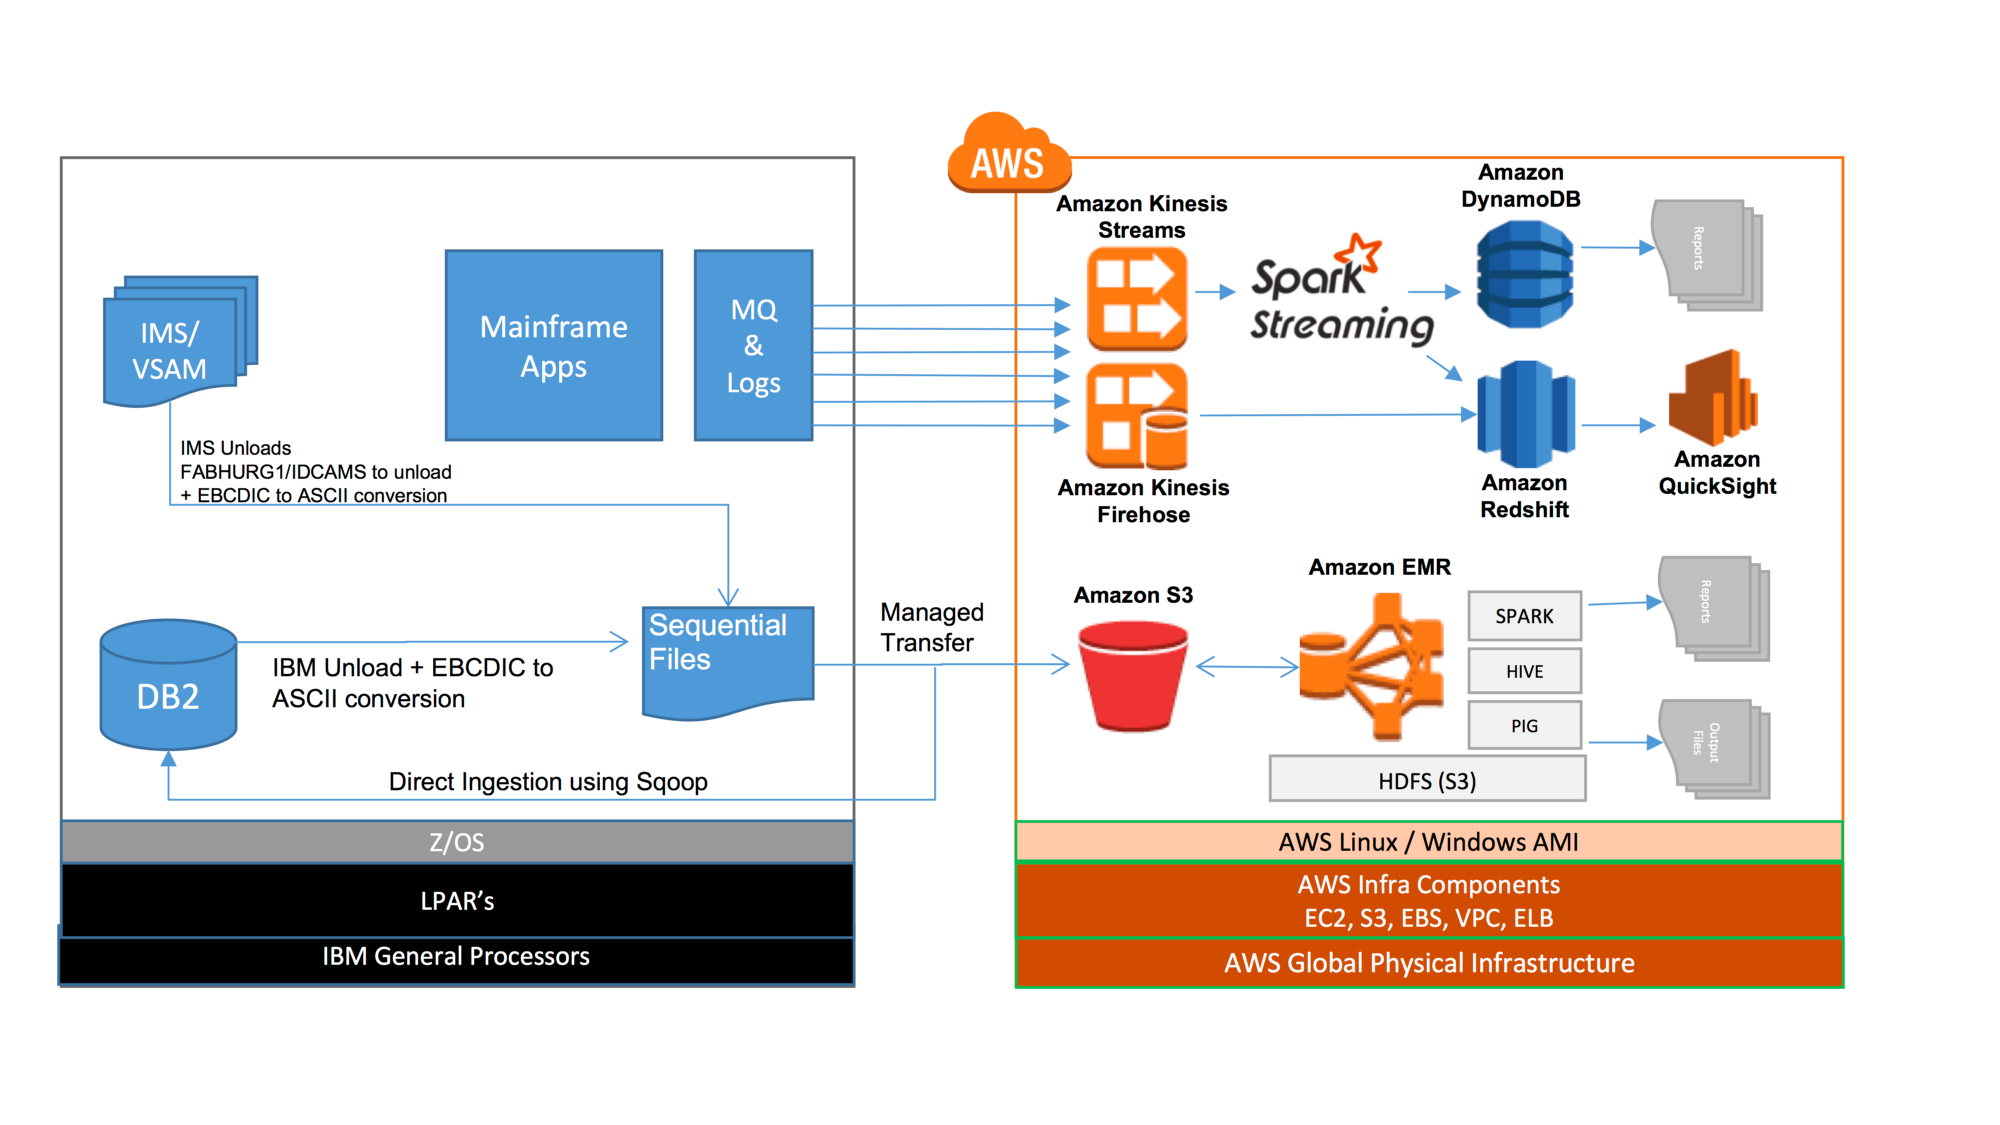 Yes, You Can Migrate Your Mainframe to the Cloud - AWS Enterprise